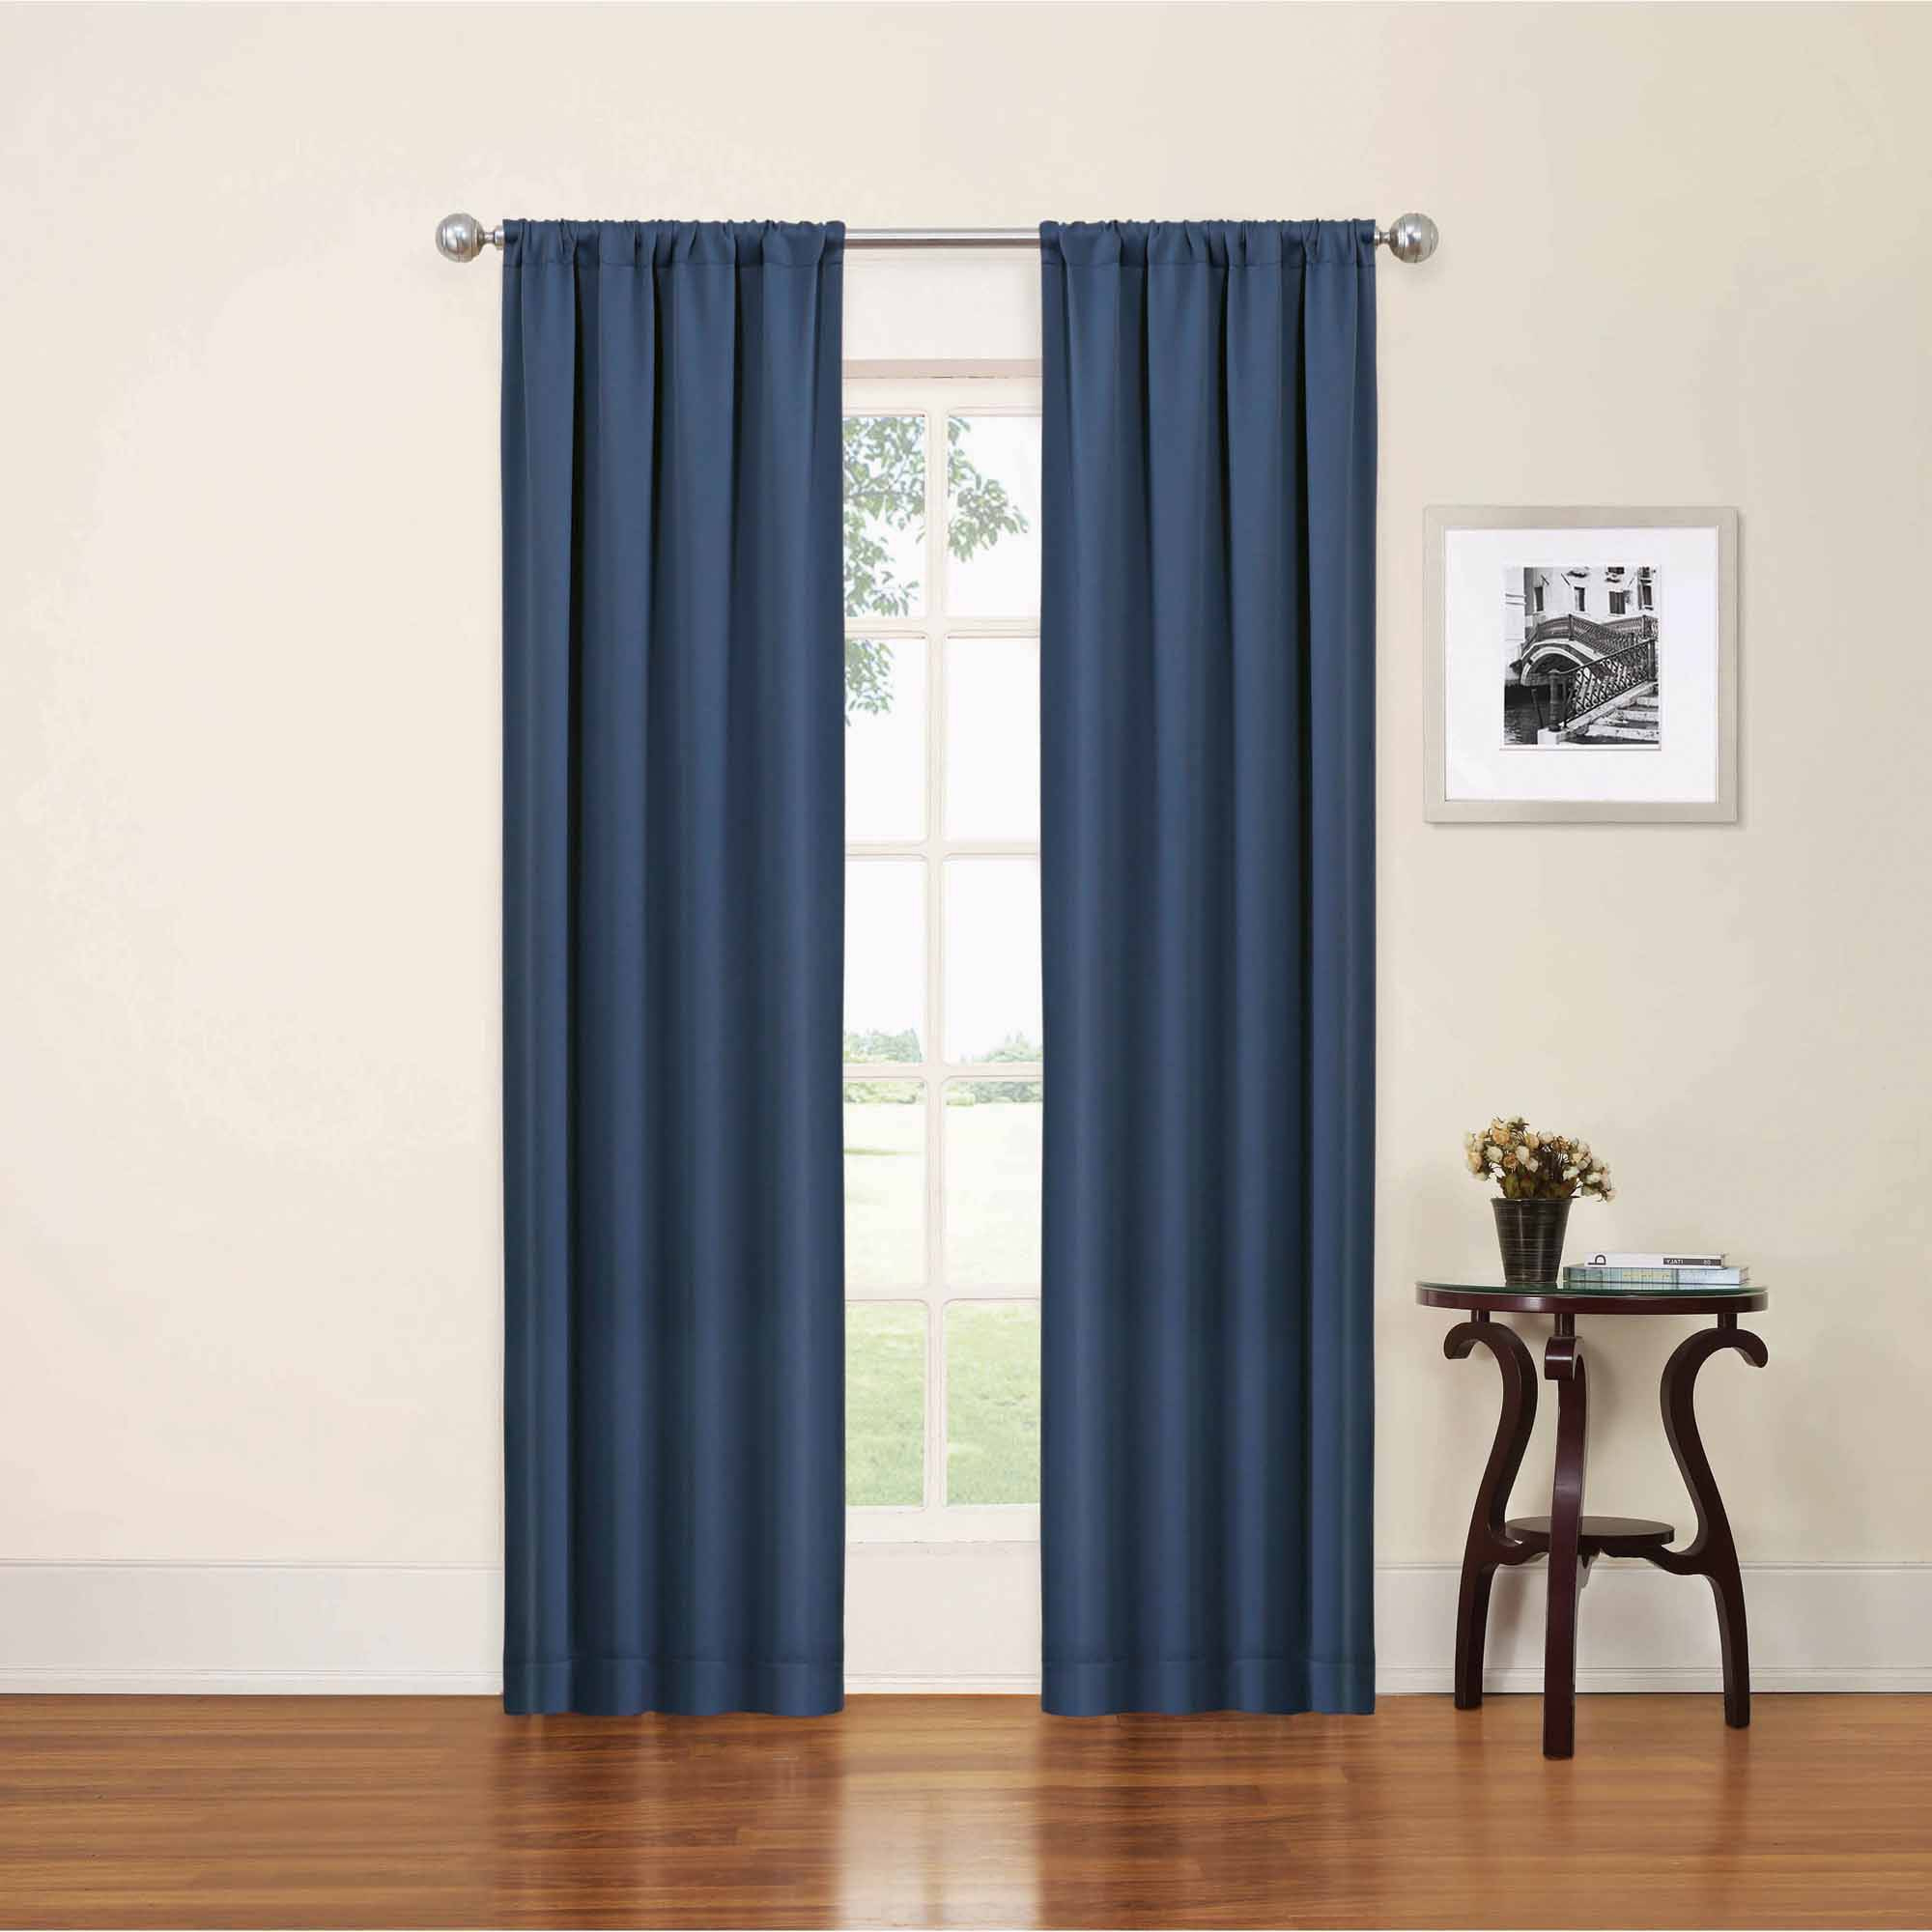 Thermaback Blackout Window Curtains Intended For Favorite Eclipse Phoenix Blackout Window Curtain Panel Pair (View 16 of 20)